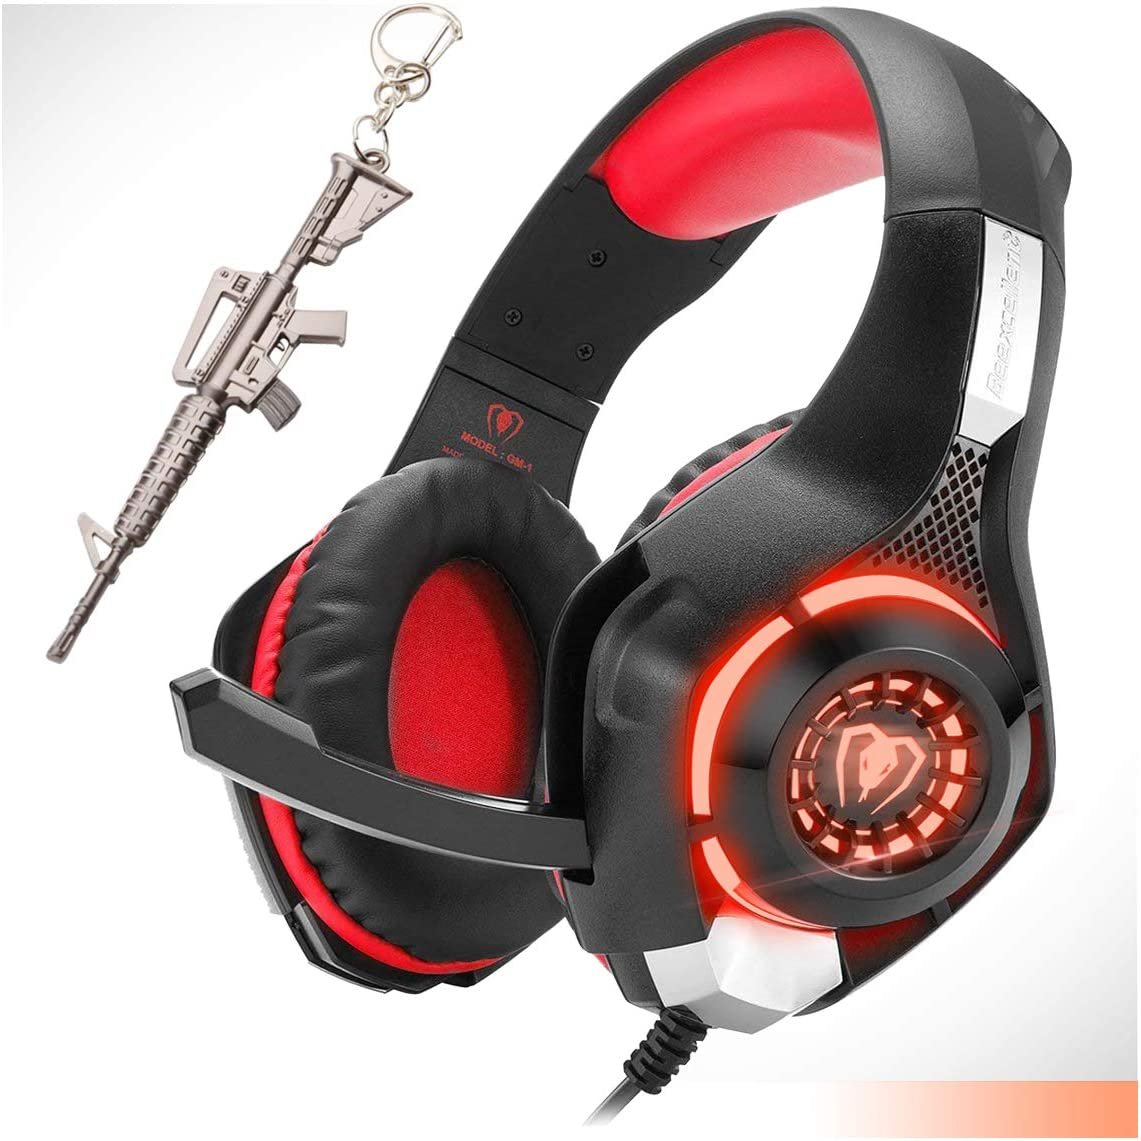 Gaming Headset,Computer Headsets PC 3.5mm Plug Headphones,Lightweight Headset,LED Light,Volume Control,Noise Canceling Mic,for PS4,PC,Xbox ONE,Tablet,Phone,Laptop,Mac Controller (red)